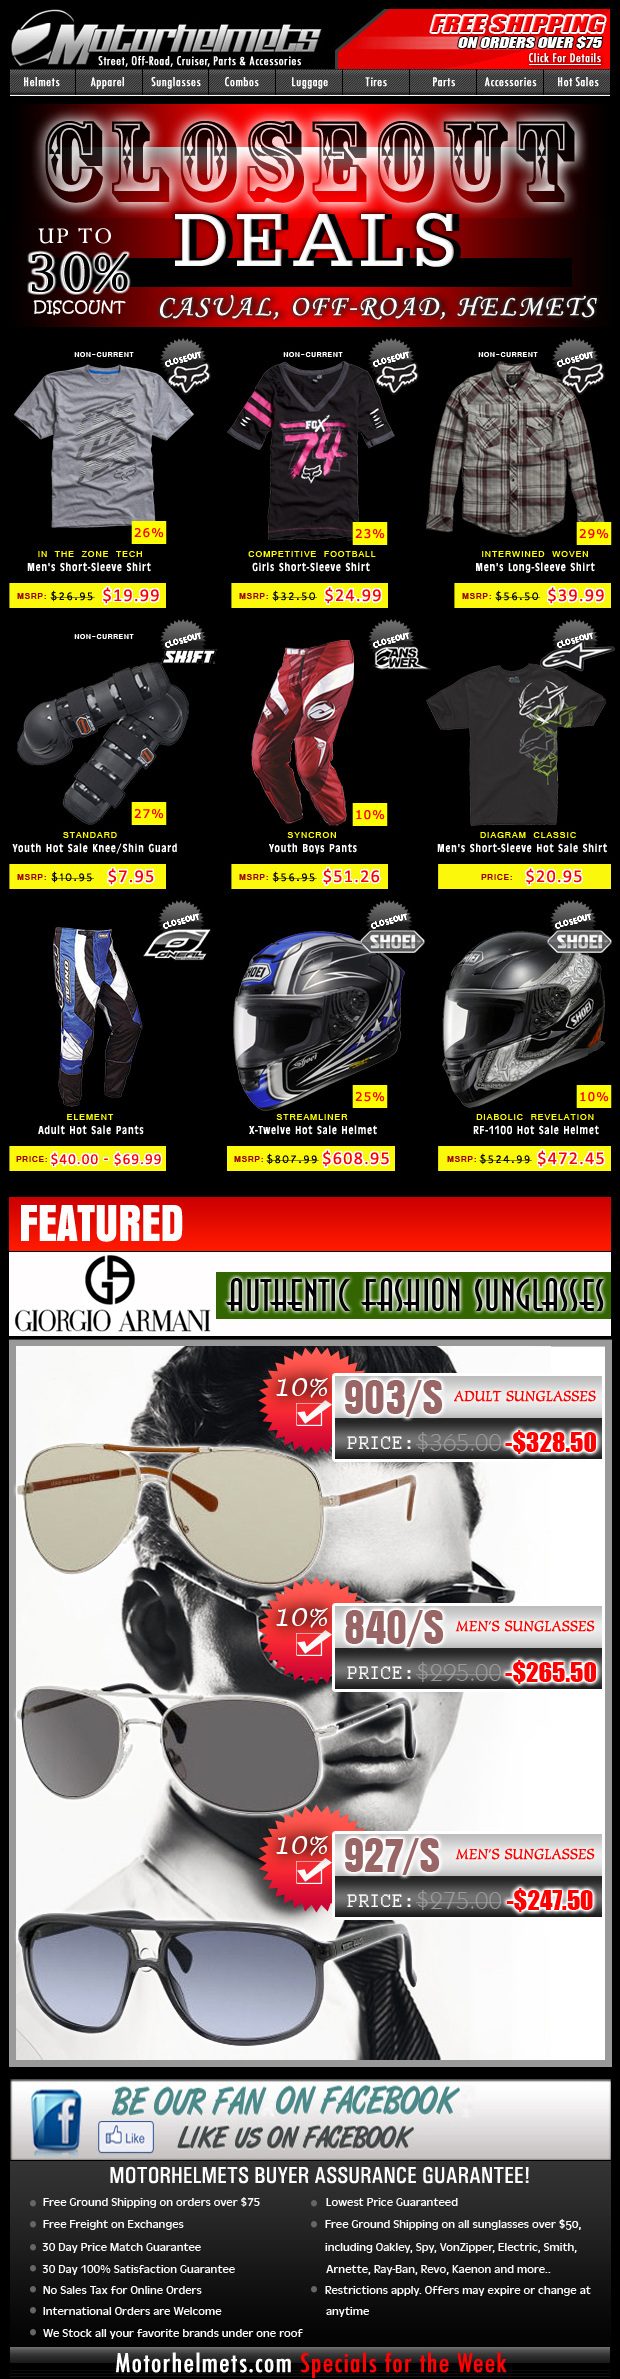 Save up to 30% off on Premium Closeouts from Fox, Shoei, O'Neal, and more!